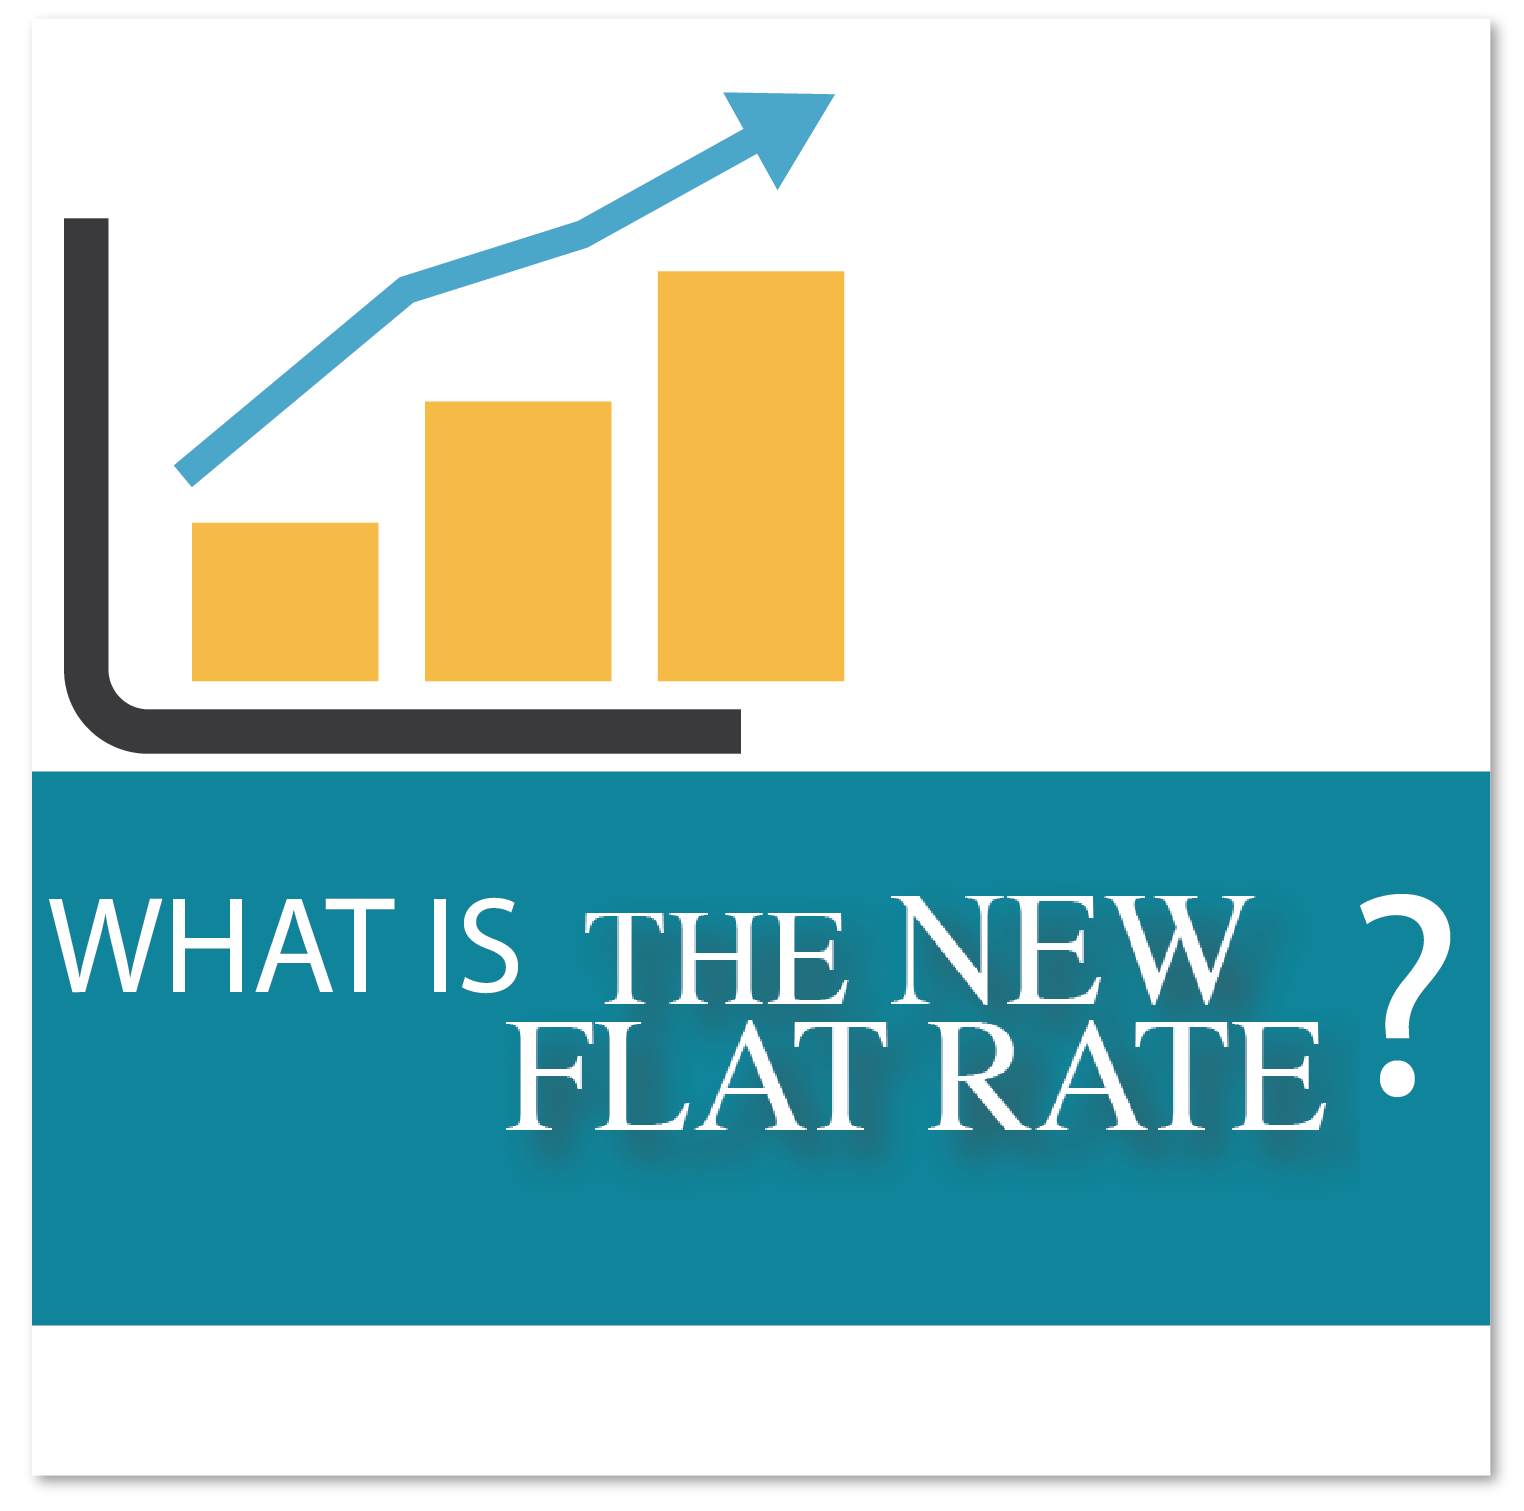 The New Flat Rate is a menu pricing system that allows HVAC, electrical, and plumbing technicians to not have to sell.Plumbing Price Book, HVAC Flat Rate Plumbing, Flat Rate, HVAC price Book, Electrical Price Book, Electrical Flat Rate